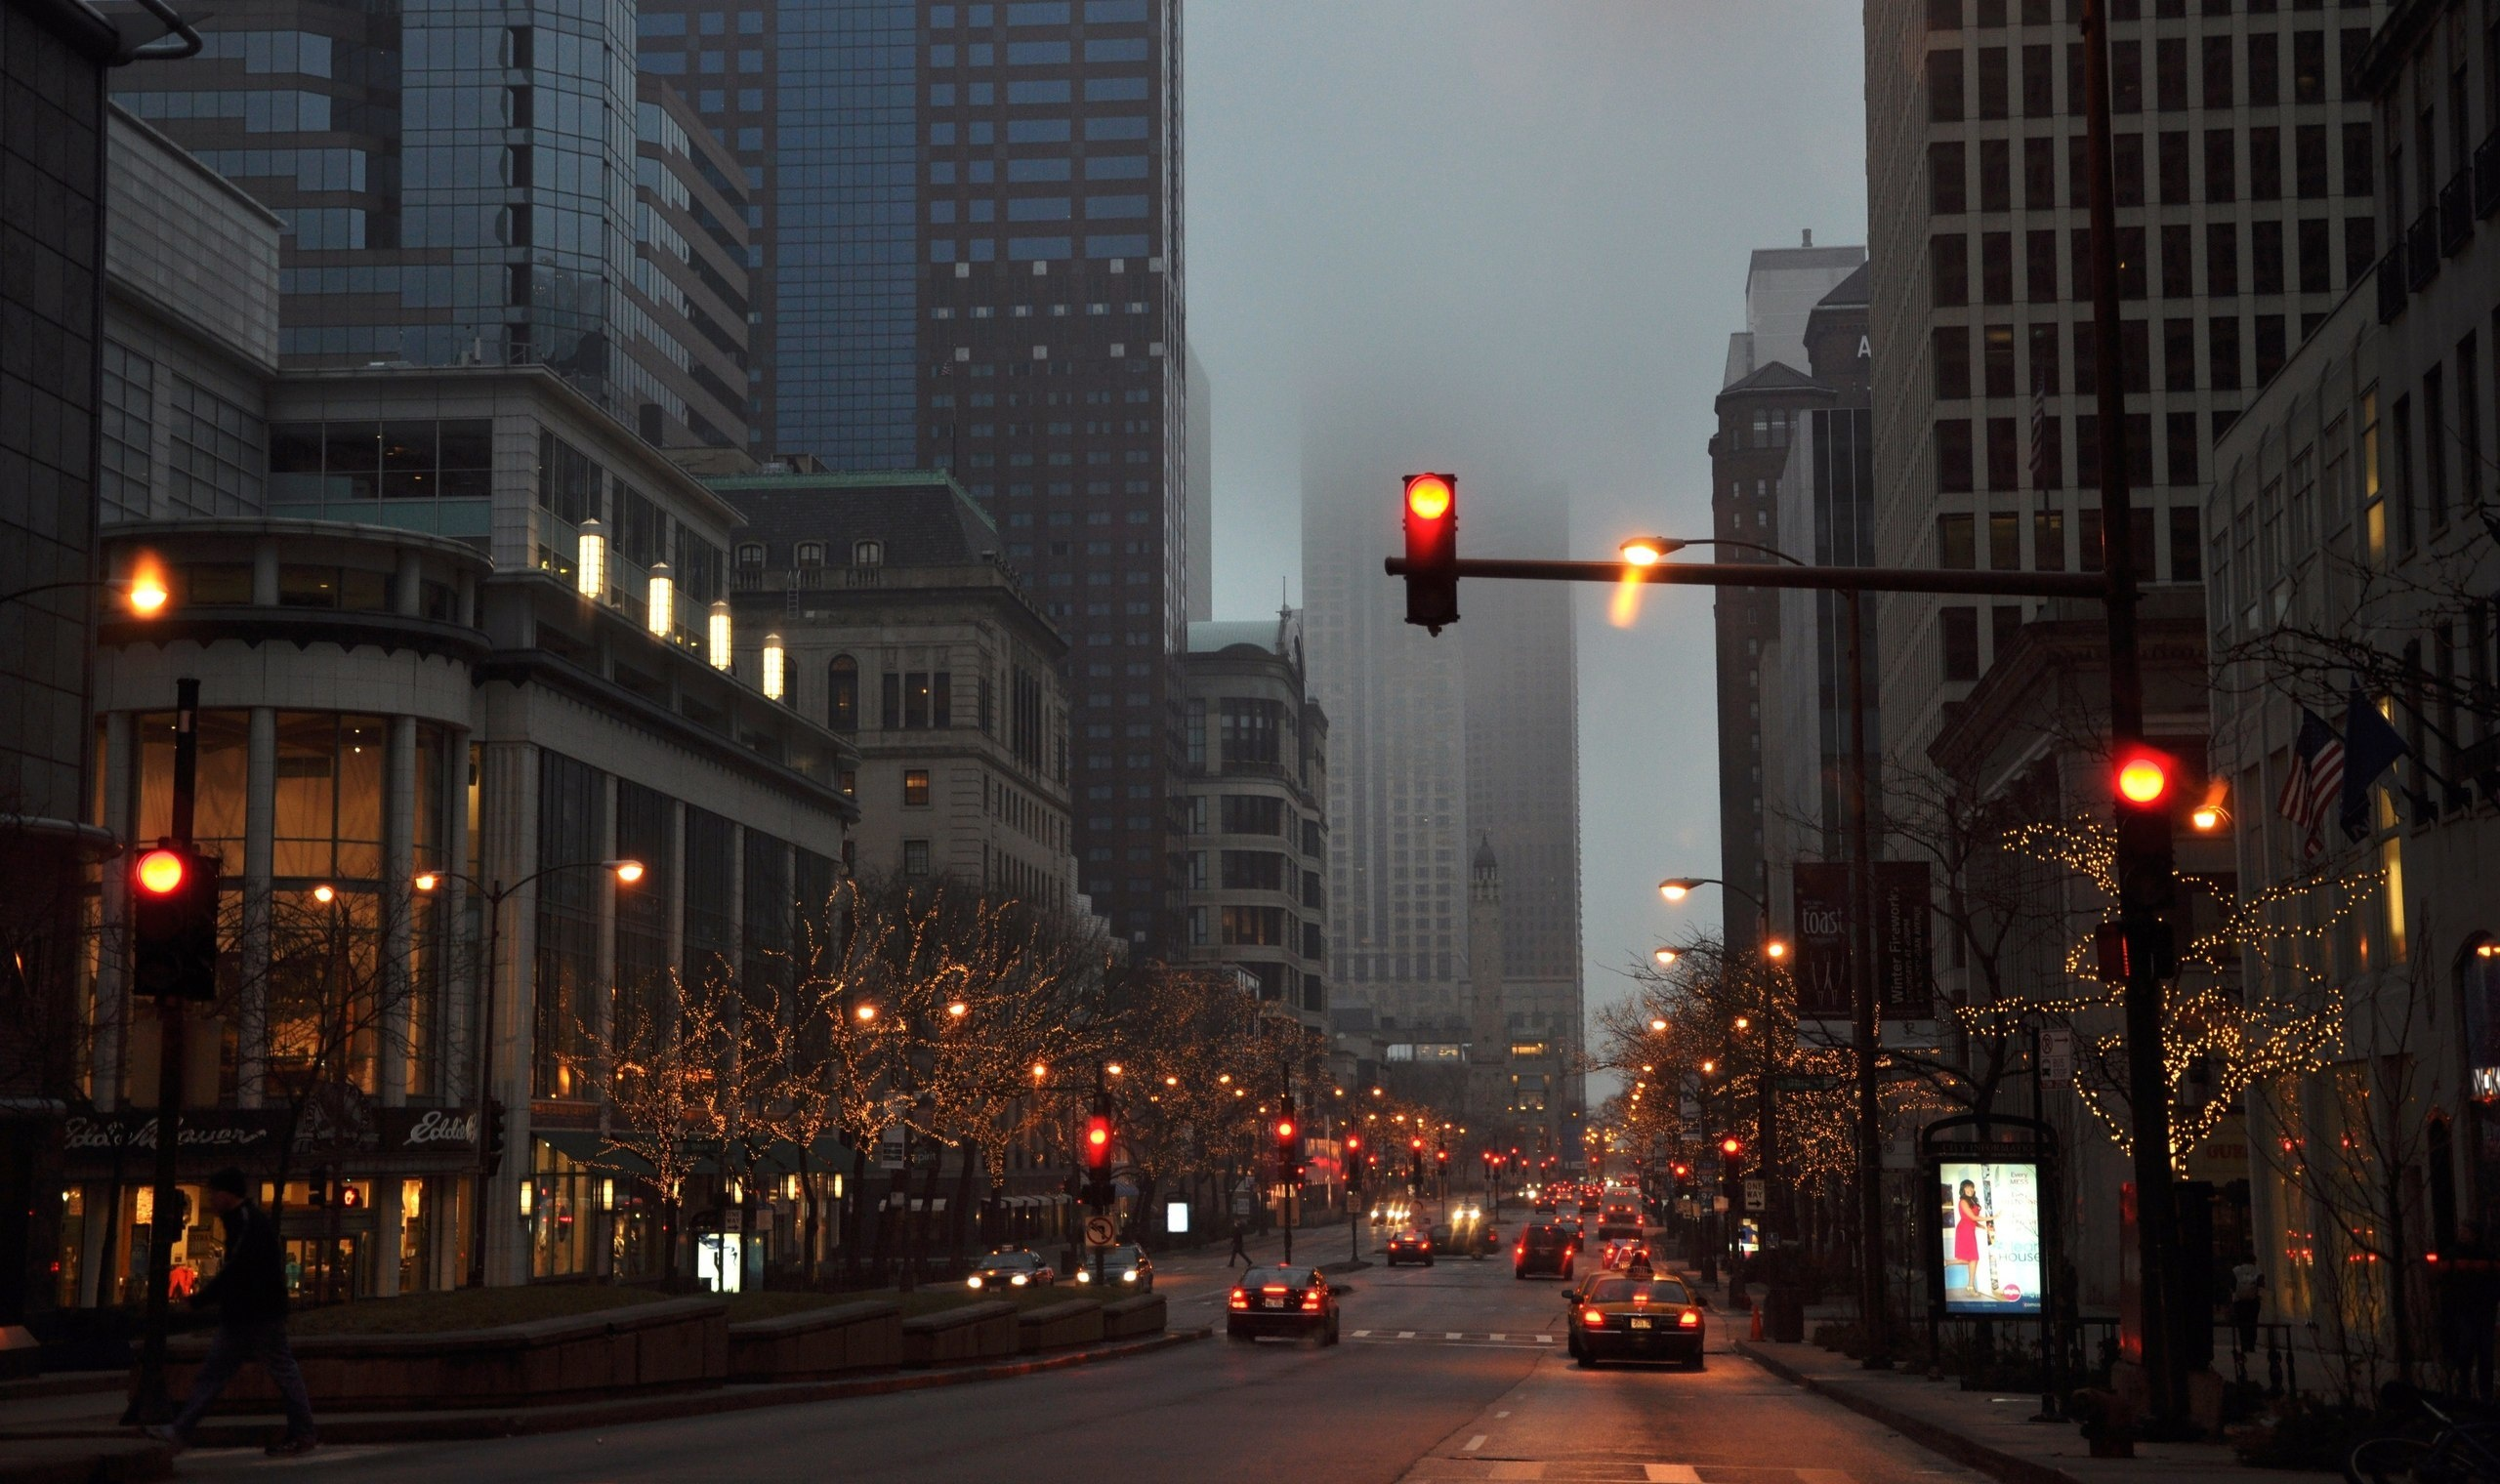 Street cars fog rain city wallpaper | 2560x1520 | 132784 ...